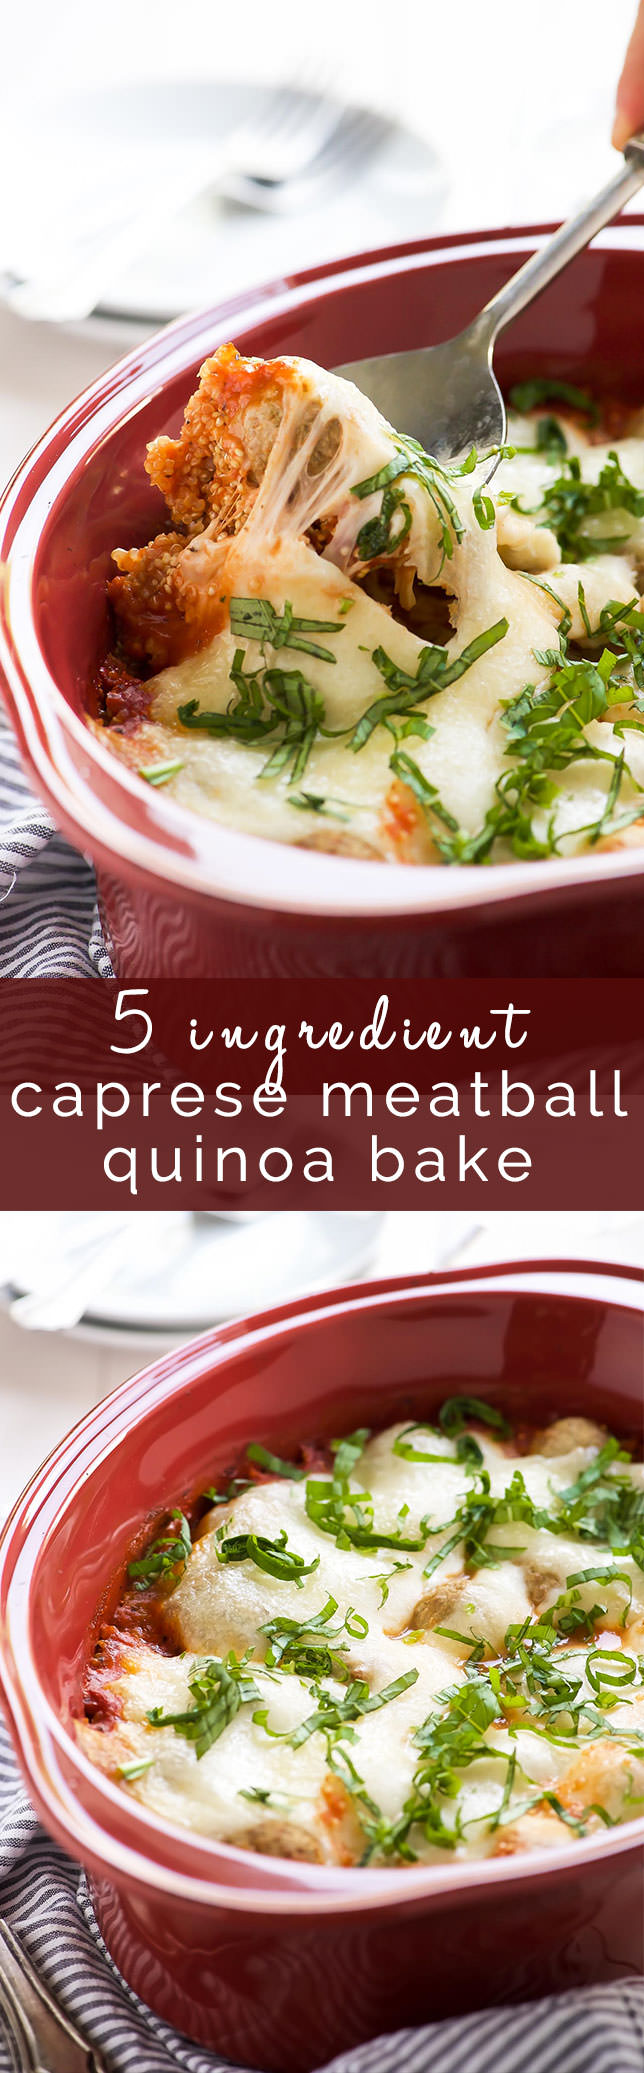 This 5 Ingredient Caprese Quinoa Bake Recipe is a dinner time savor! It requires no prior cooking and filled with gooey cheese, heart-healthy quinoa, turkey meatballs and fresh basil. It freezes wonderfully so make two!